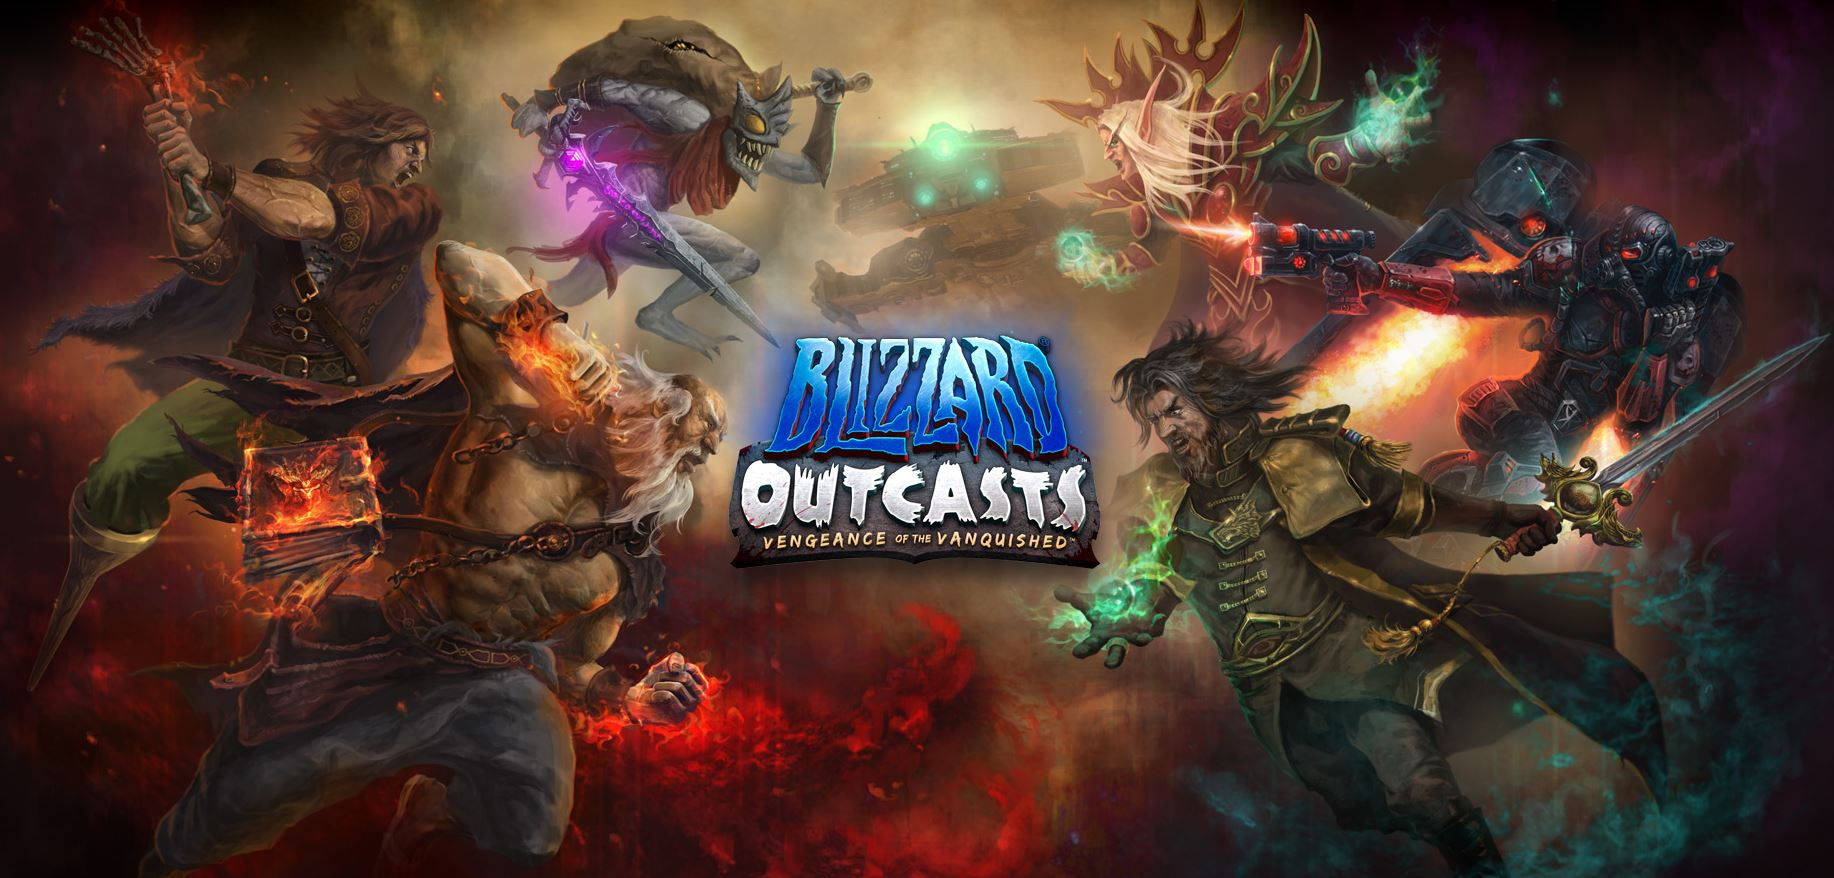 Blizzard Outcasts: Vengeance of the Vanquished coming to ...